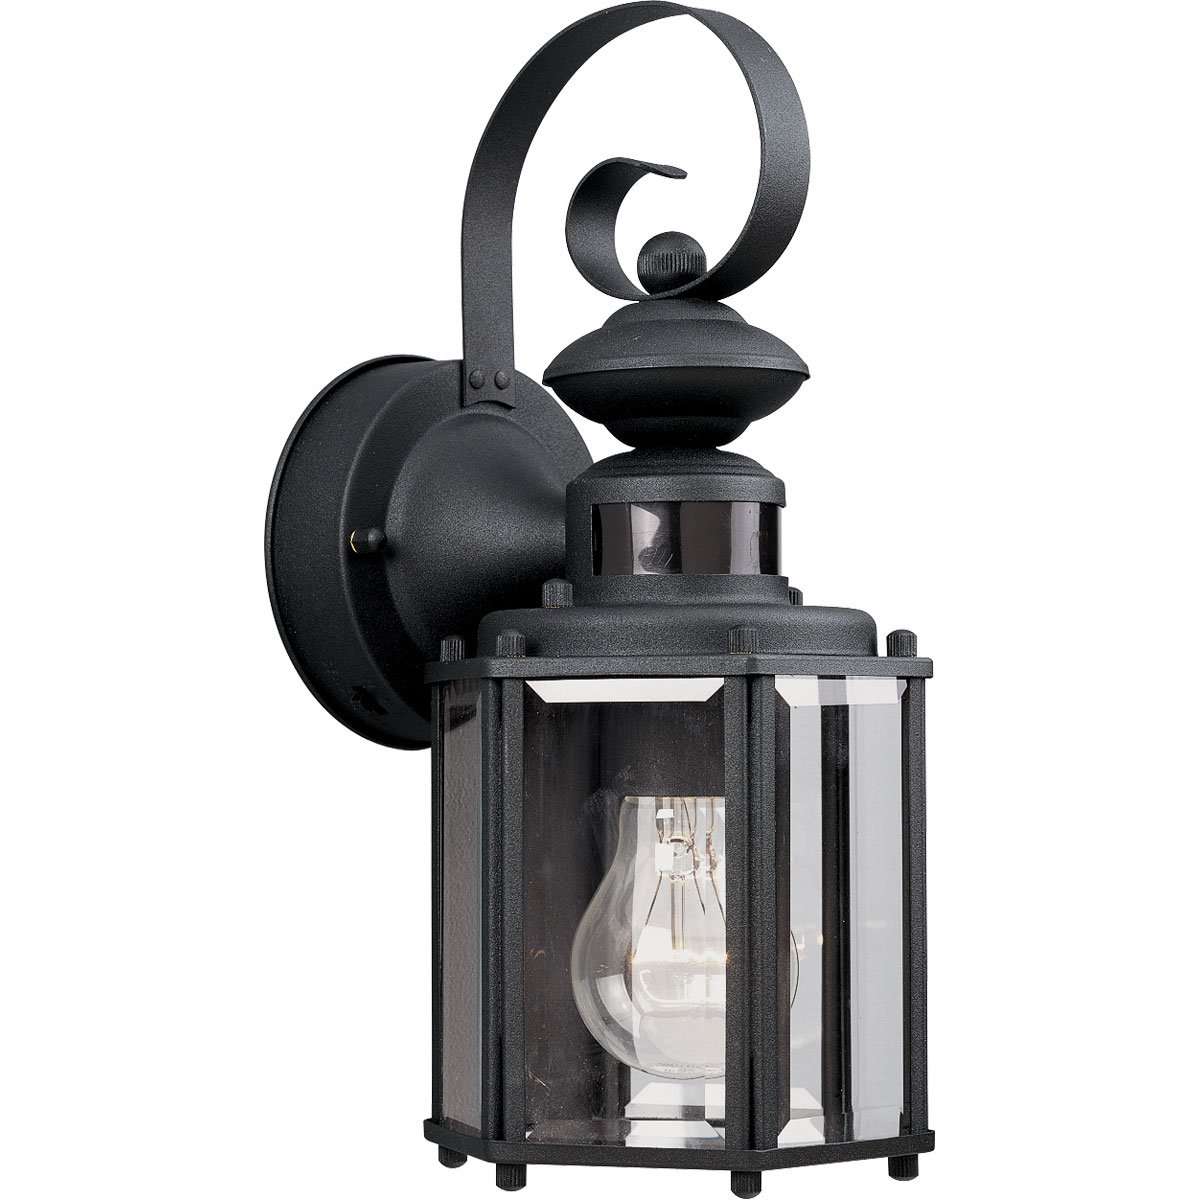 Progress lighting p5662 31 1 light wall lantern with motion sensor progress lighting p5662 31 1 light wall lantern with motion sensor black wall sconces amazon aloadofball Images